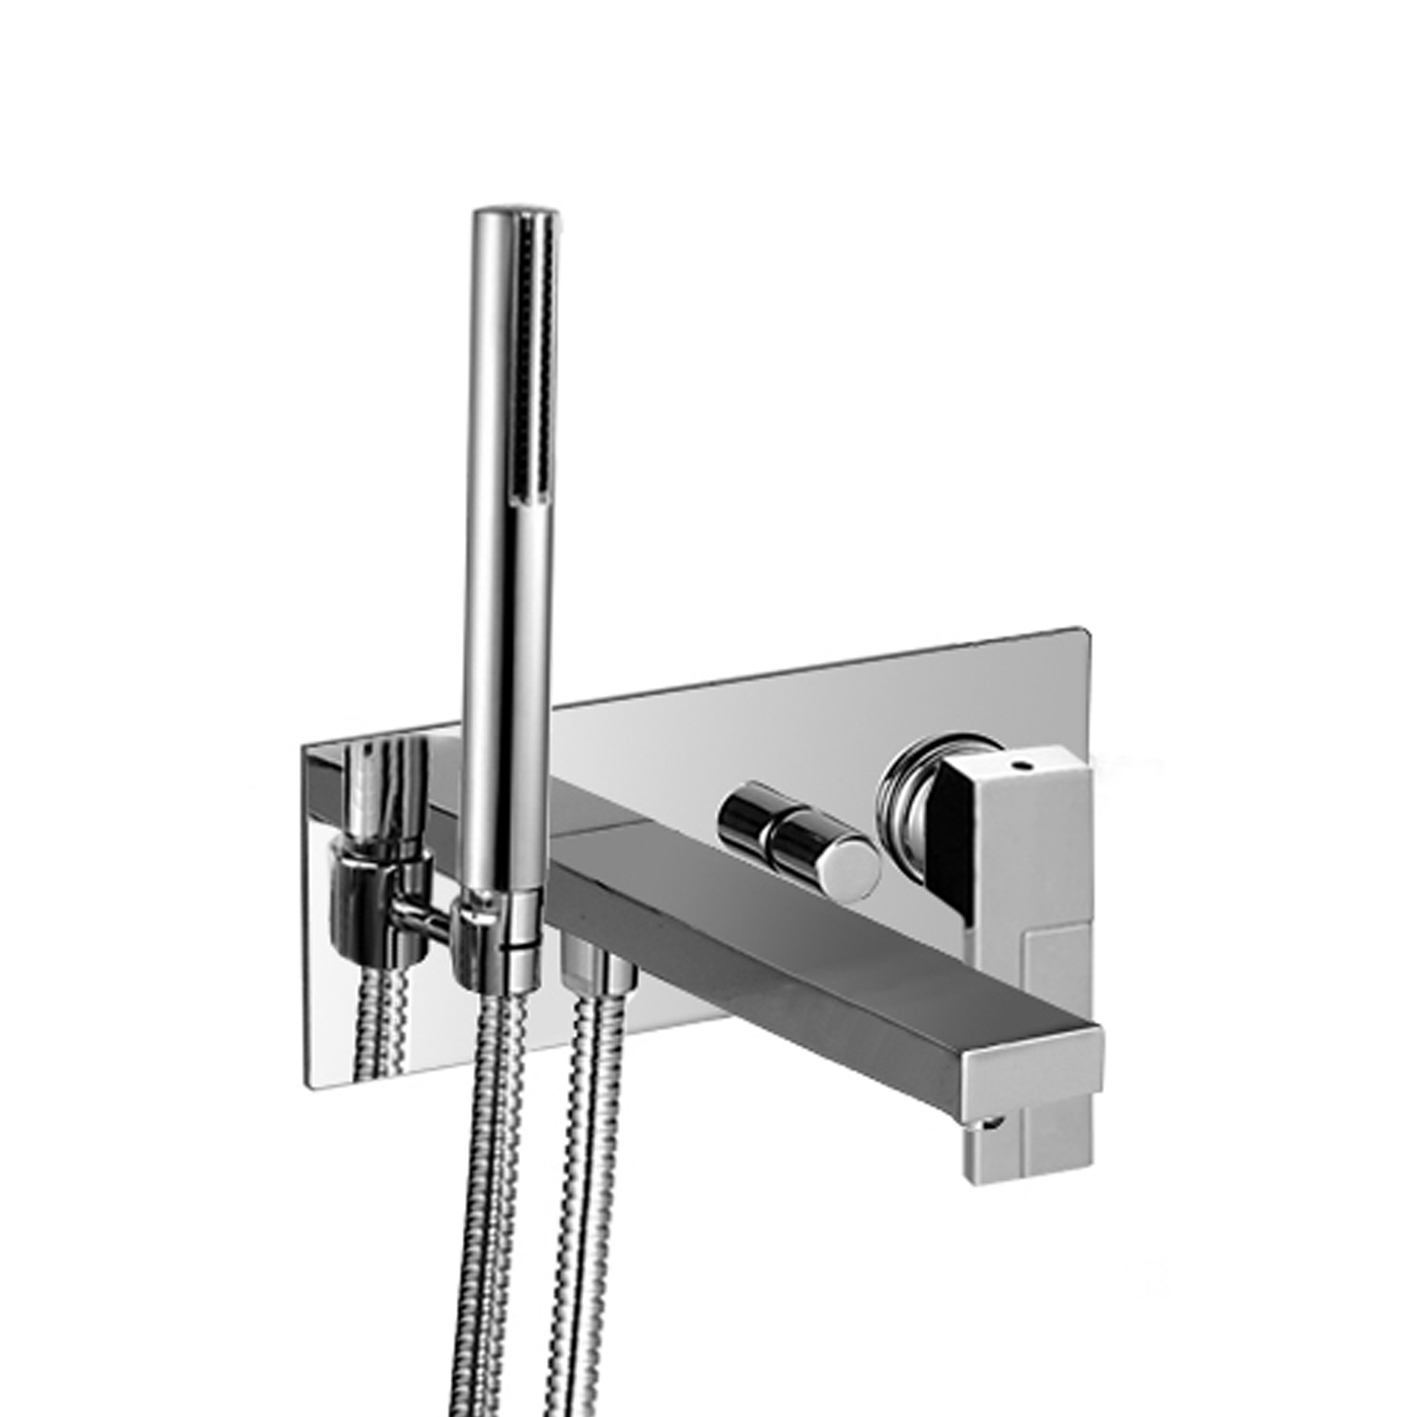 Fantini 3321SB+3320AU Plano In-Wall non-Thermostatic Single-Control Tub Mixer